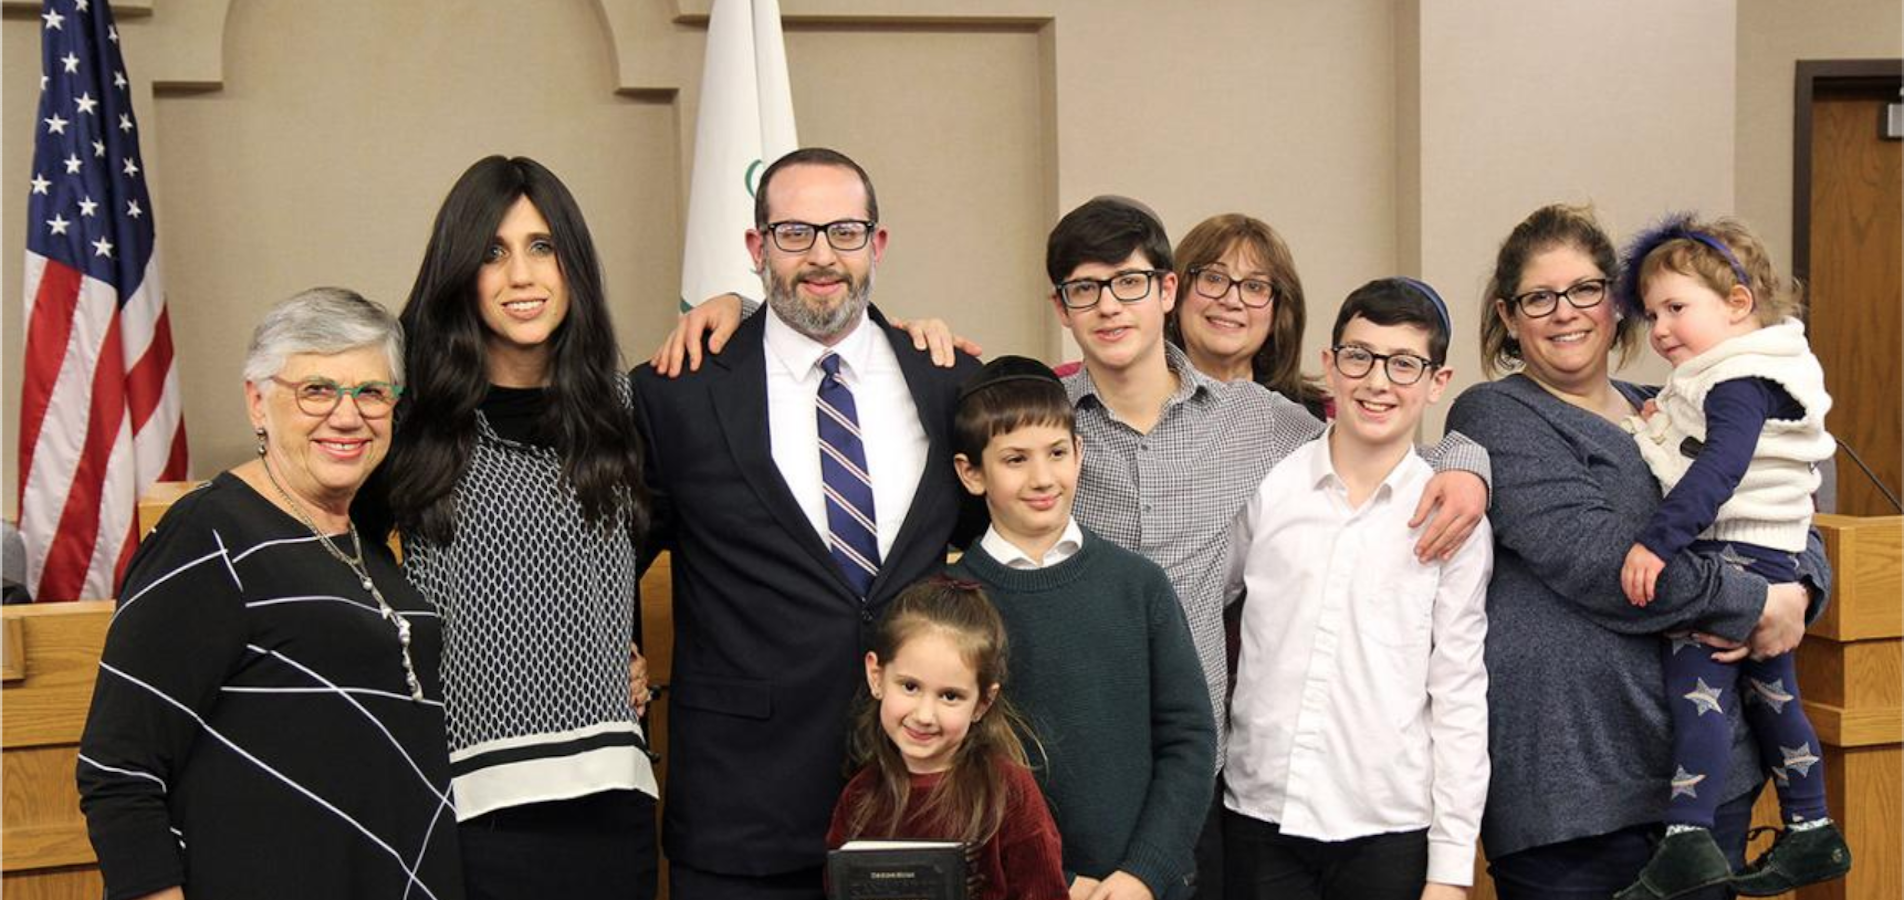 Cleveland Heights Swears in First Orthodox Jewish Mayor & Other Orthodox Jews in the News